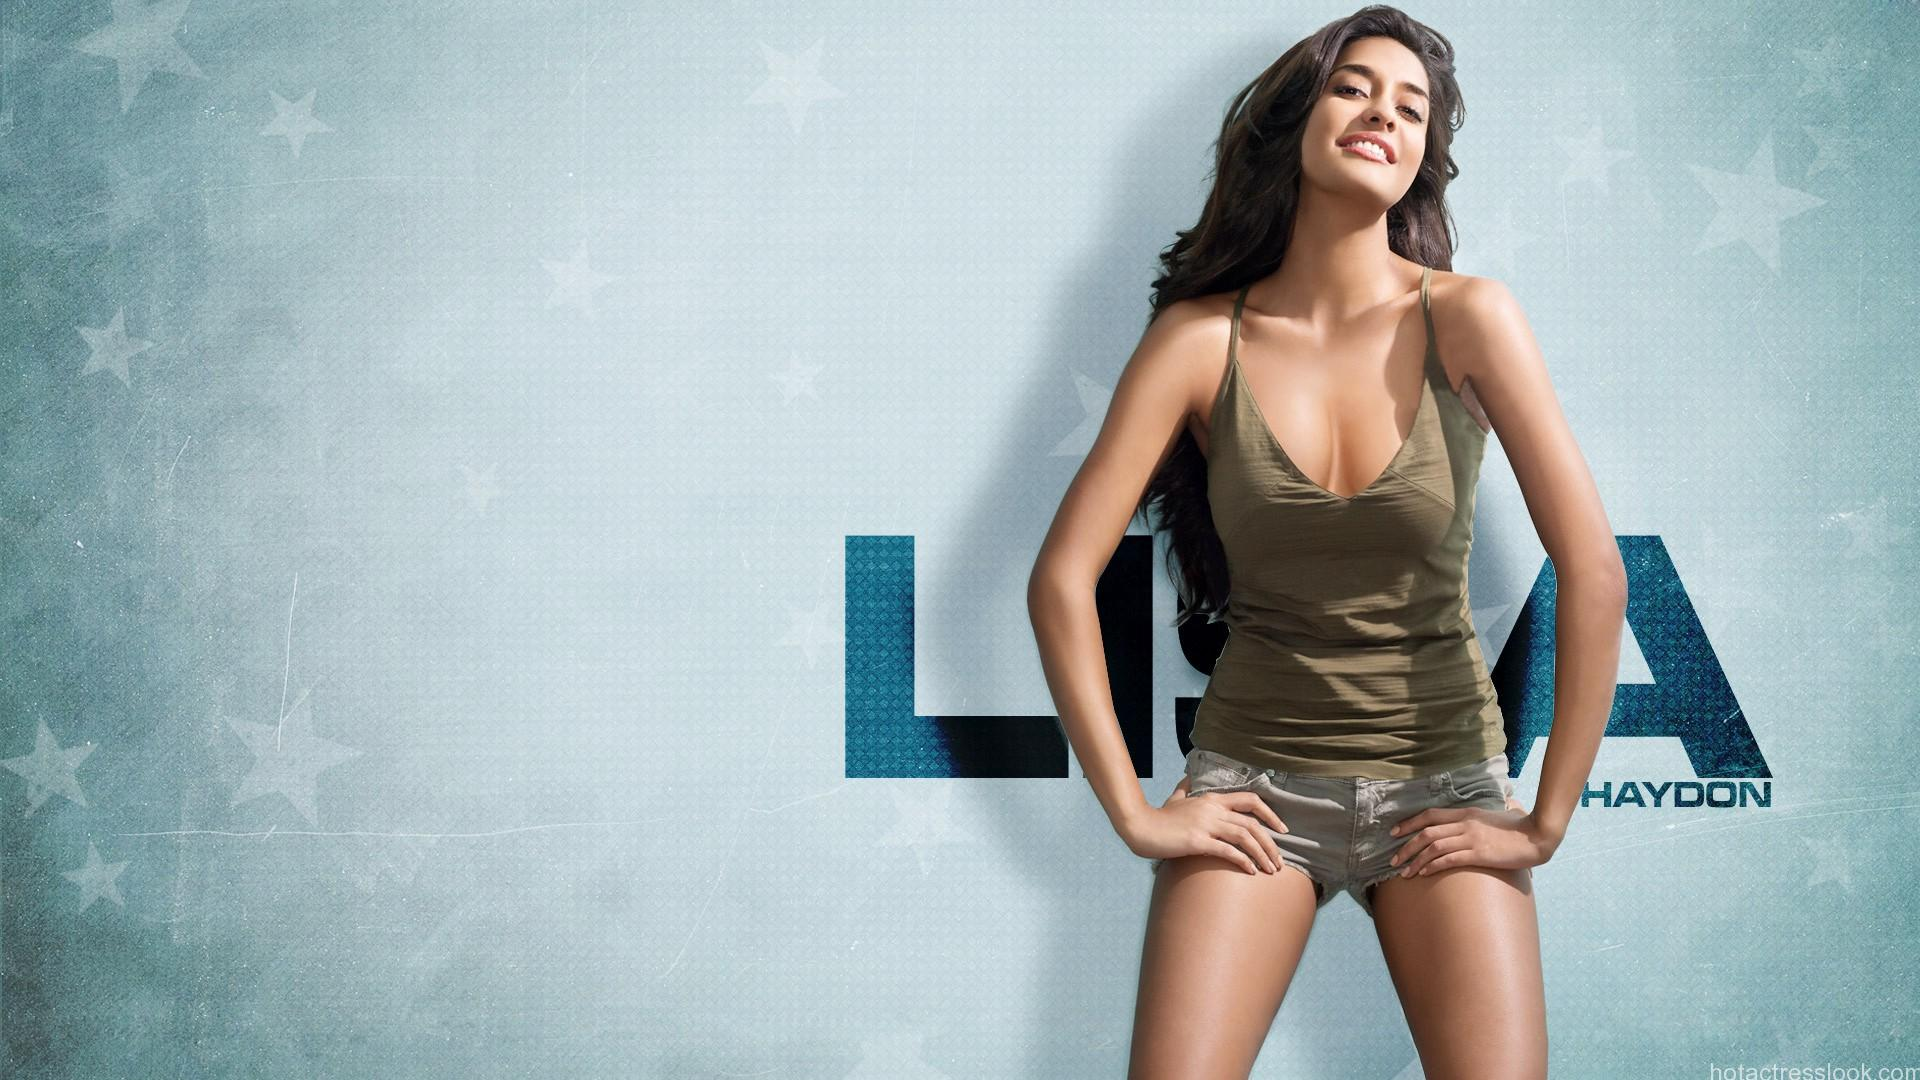 Lisa Haydon Hot in Lingerie